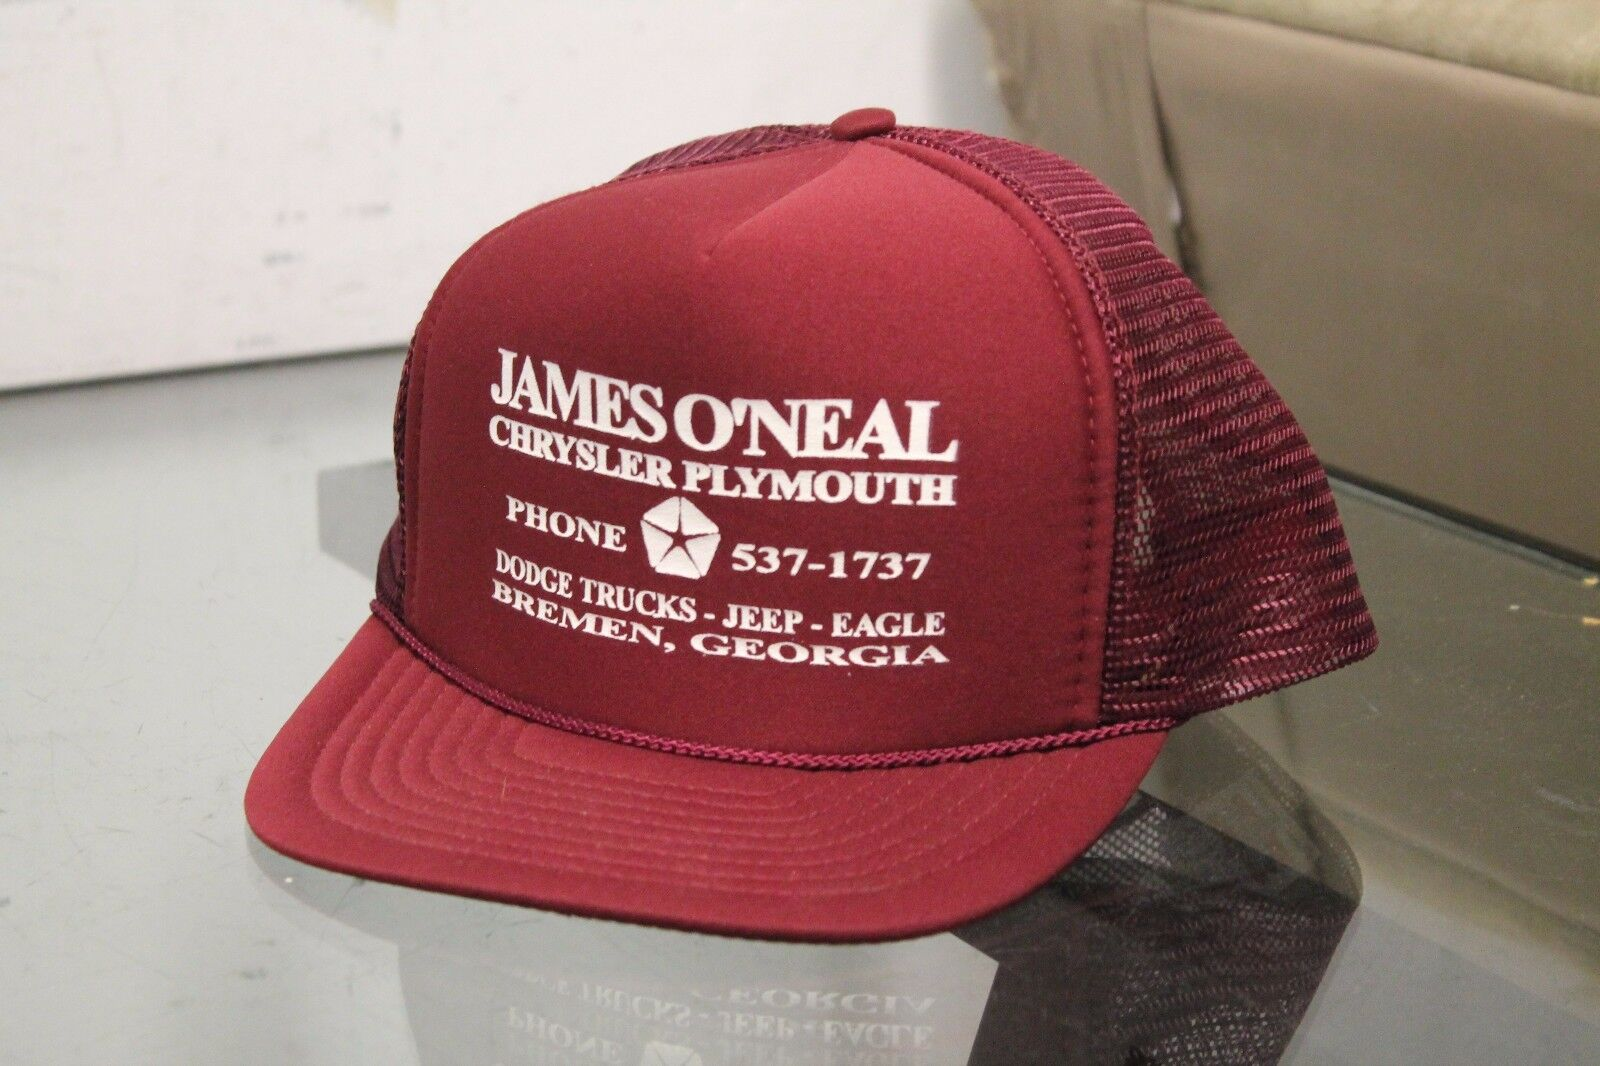 Vintage James O'neal Chrysler Plymouth Bremen Hat Cap Red Snap Back Red Cap Adjustable d7f1b3